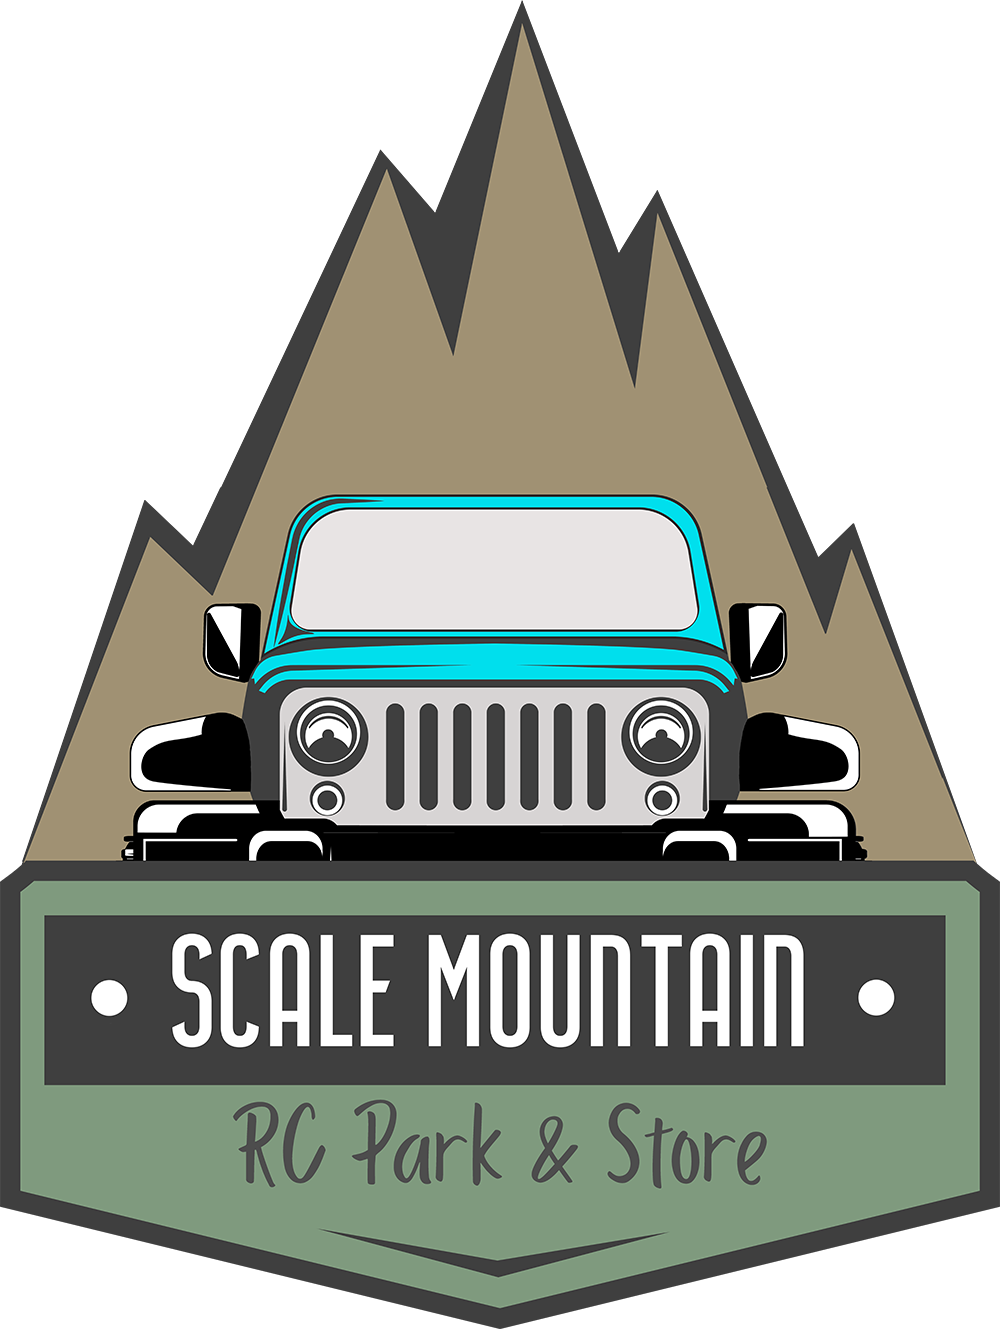 Scale Mountain RC Park & Store